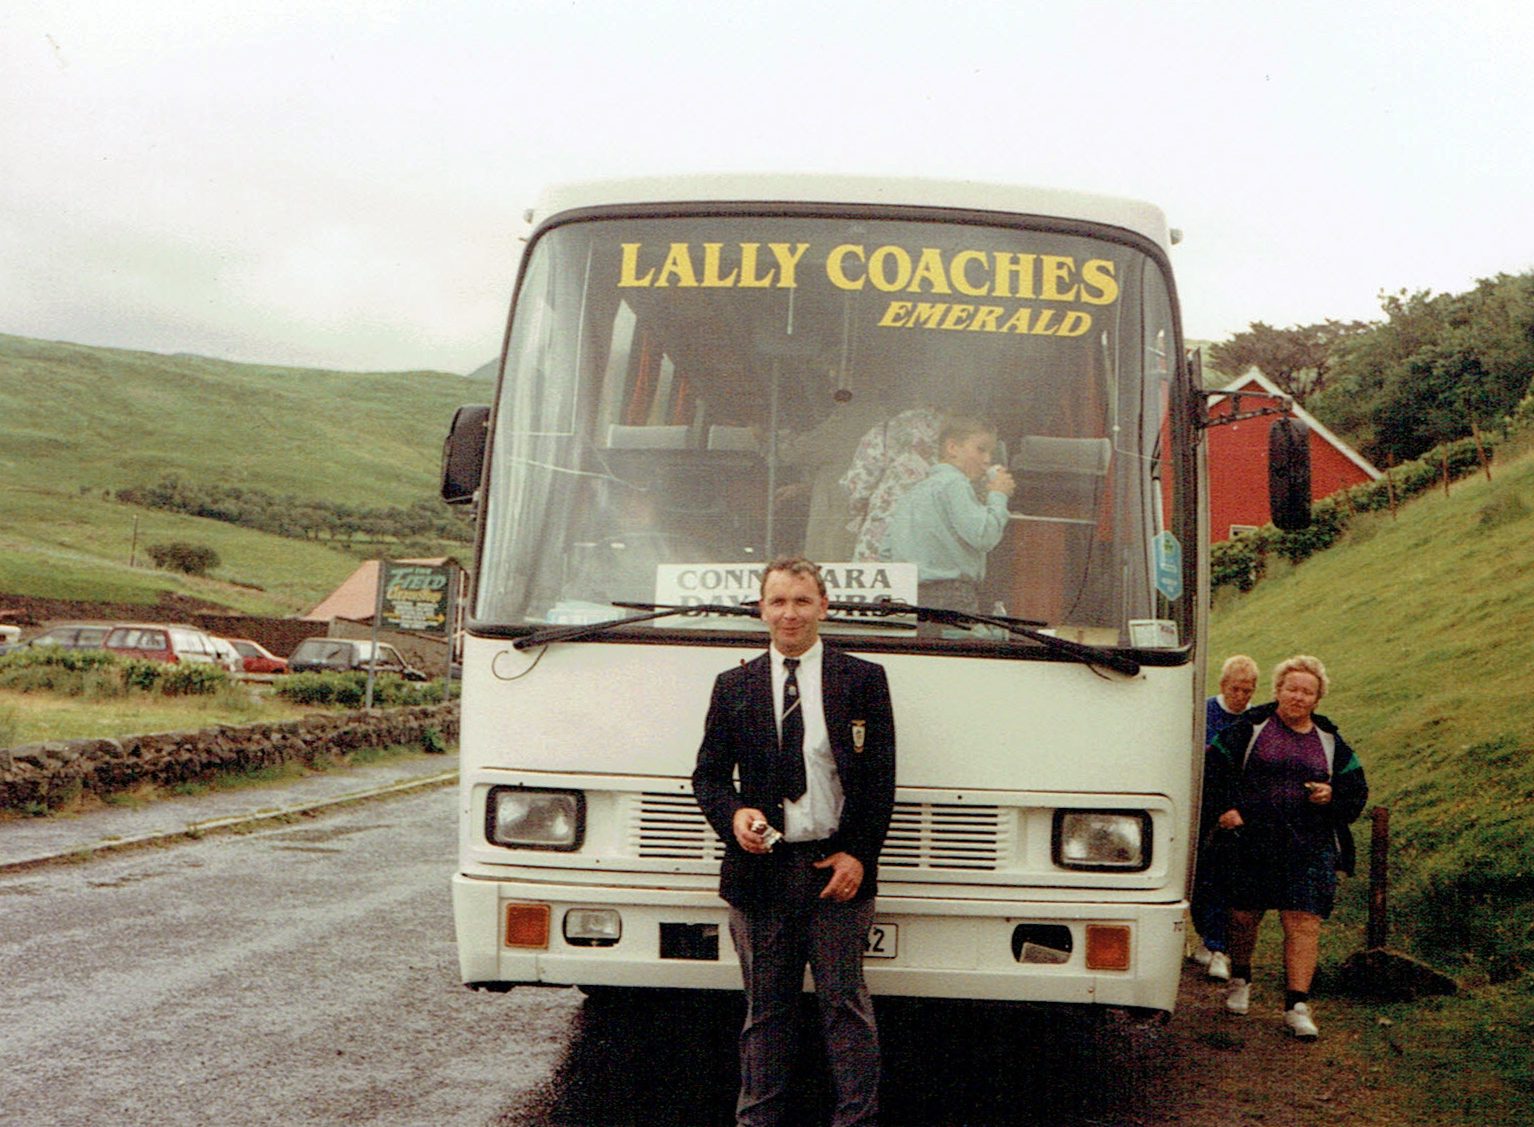 About Lally Coaches - Our History